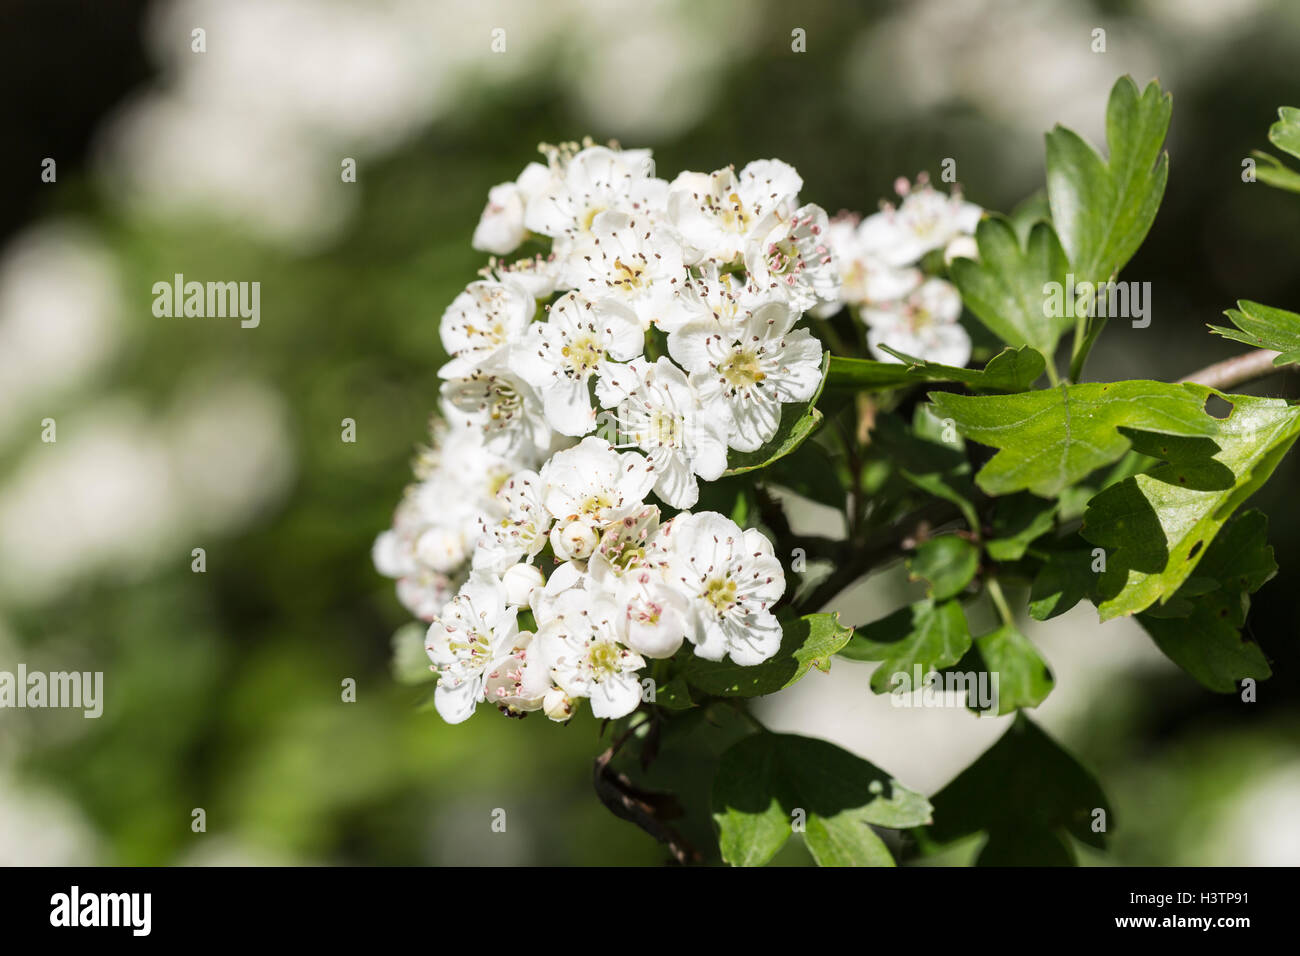 Hedgerow flowers spring uk stock photos hedgerow flowers spring uk hawthorn or may tree crataegus white flowers in spring surrey uk mightylinksfo